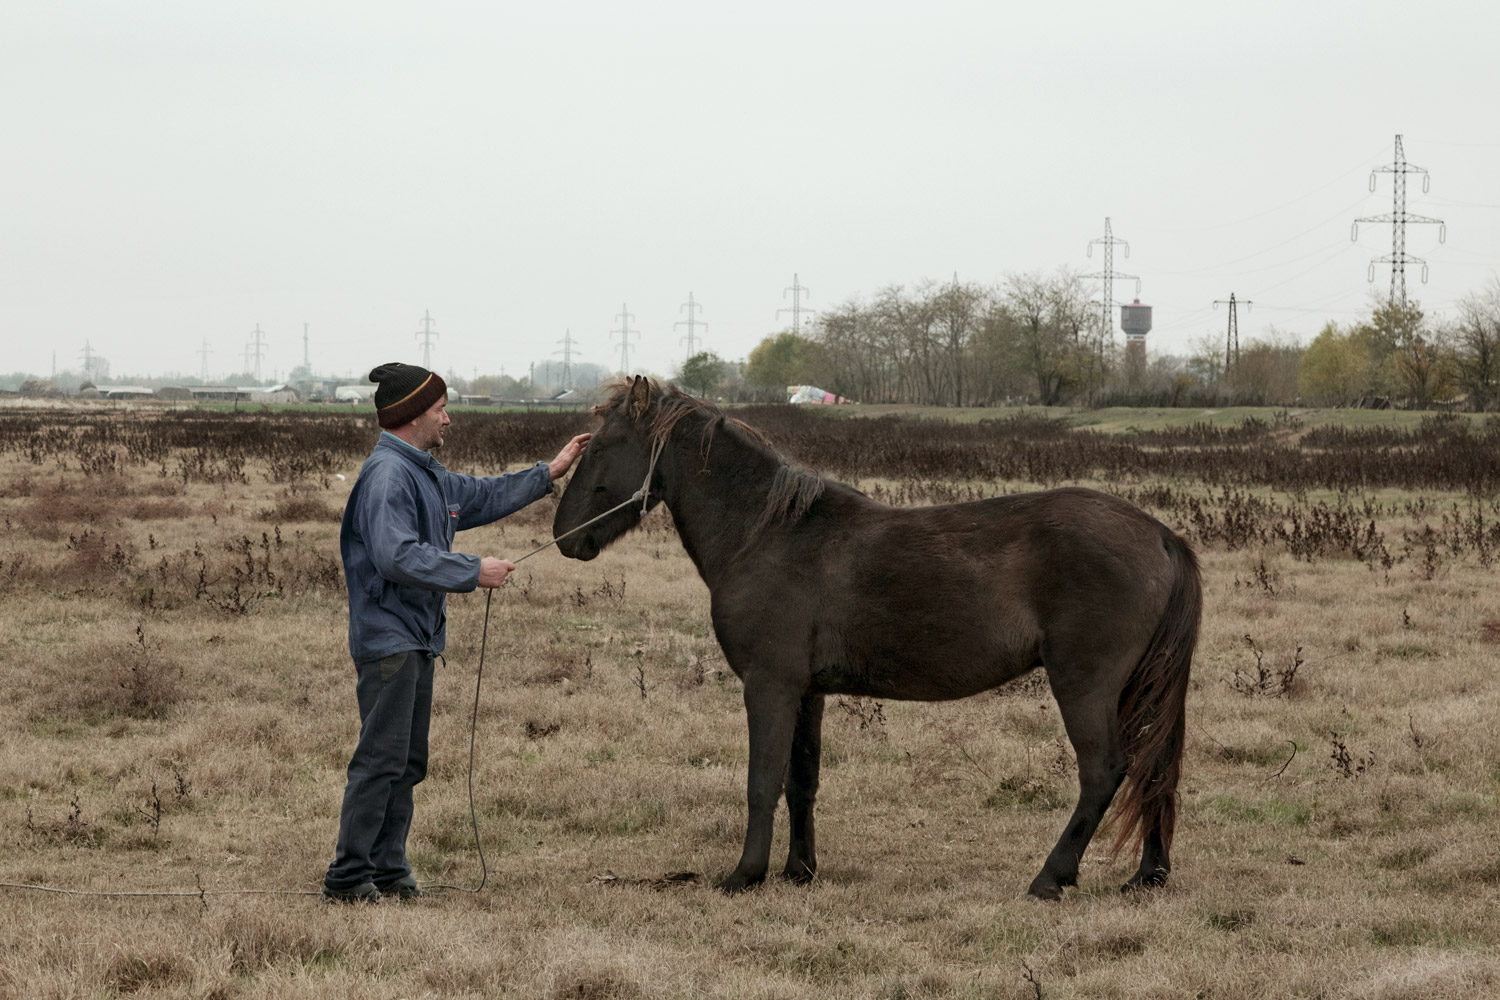 Sulina, Romania,November 2017. A man and his horse in the outskirts of the town.